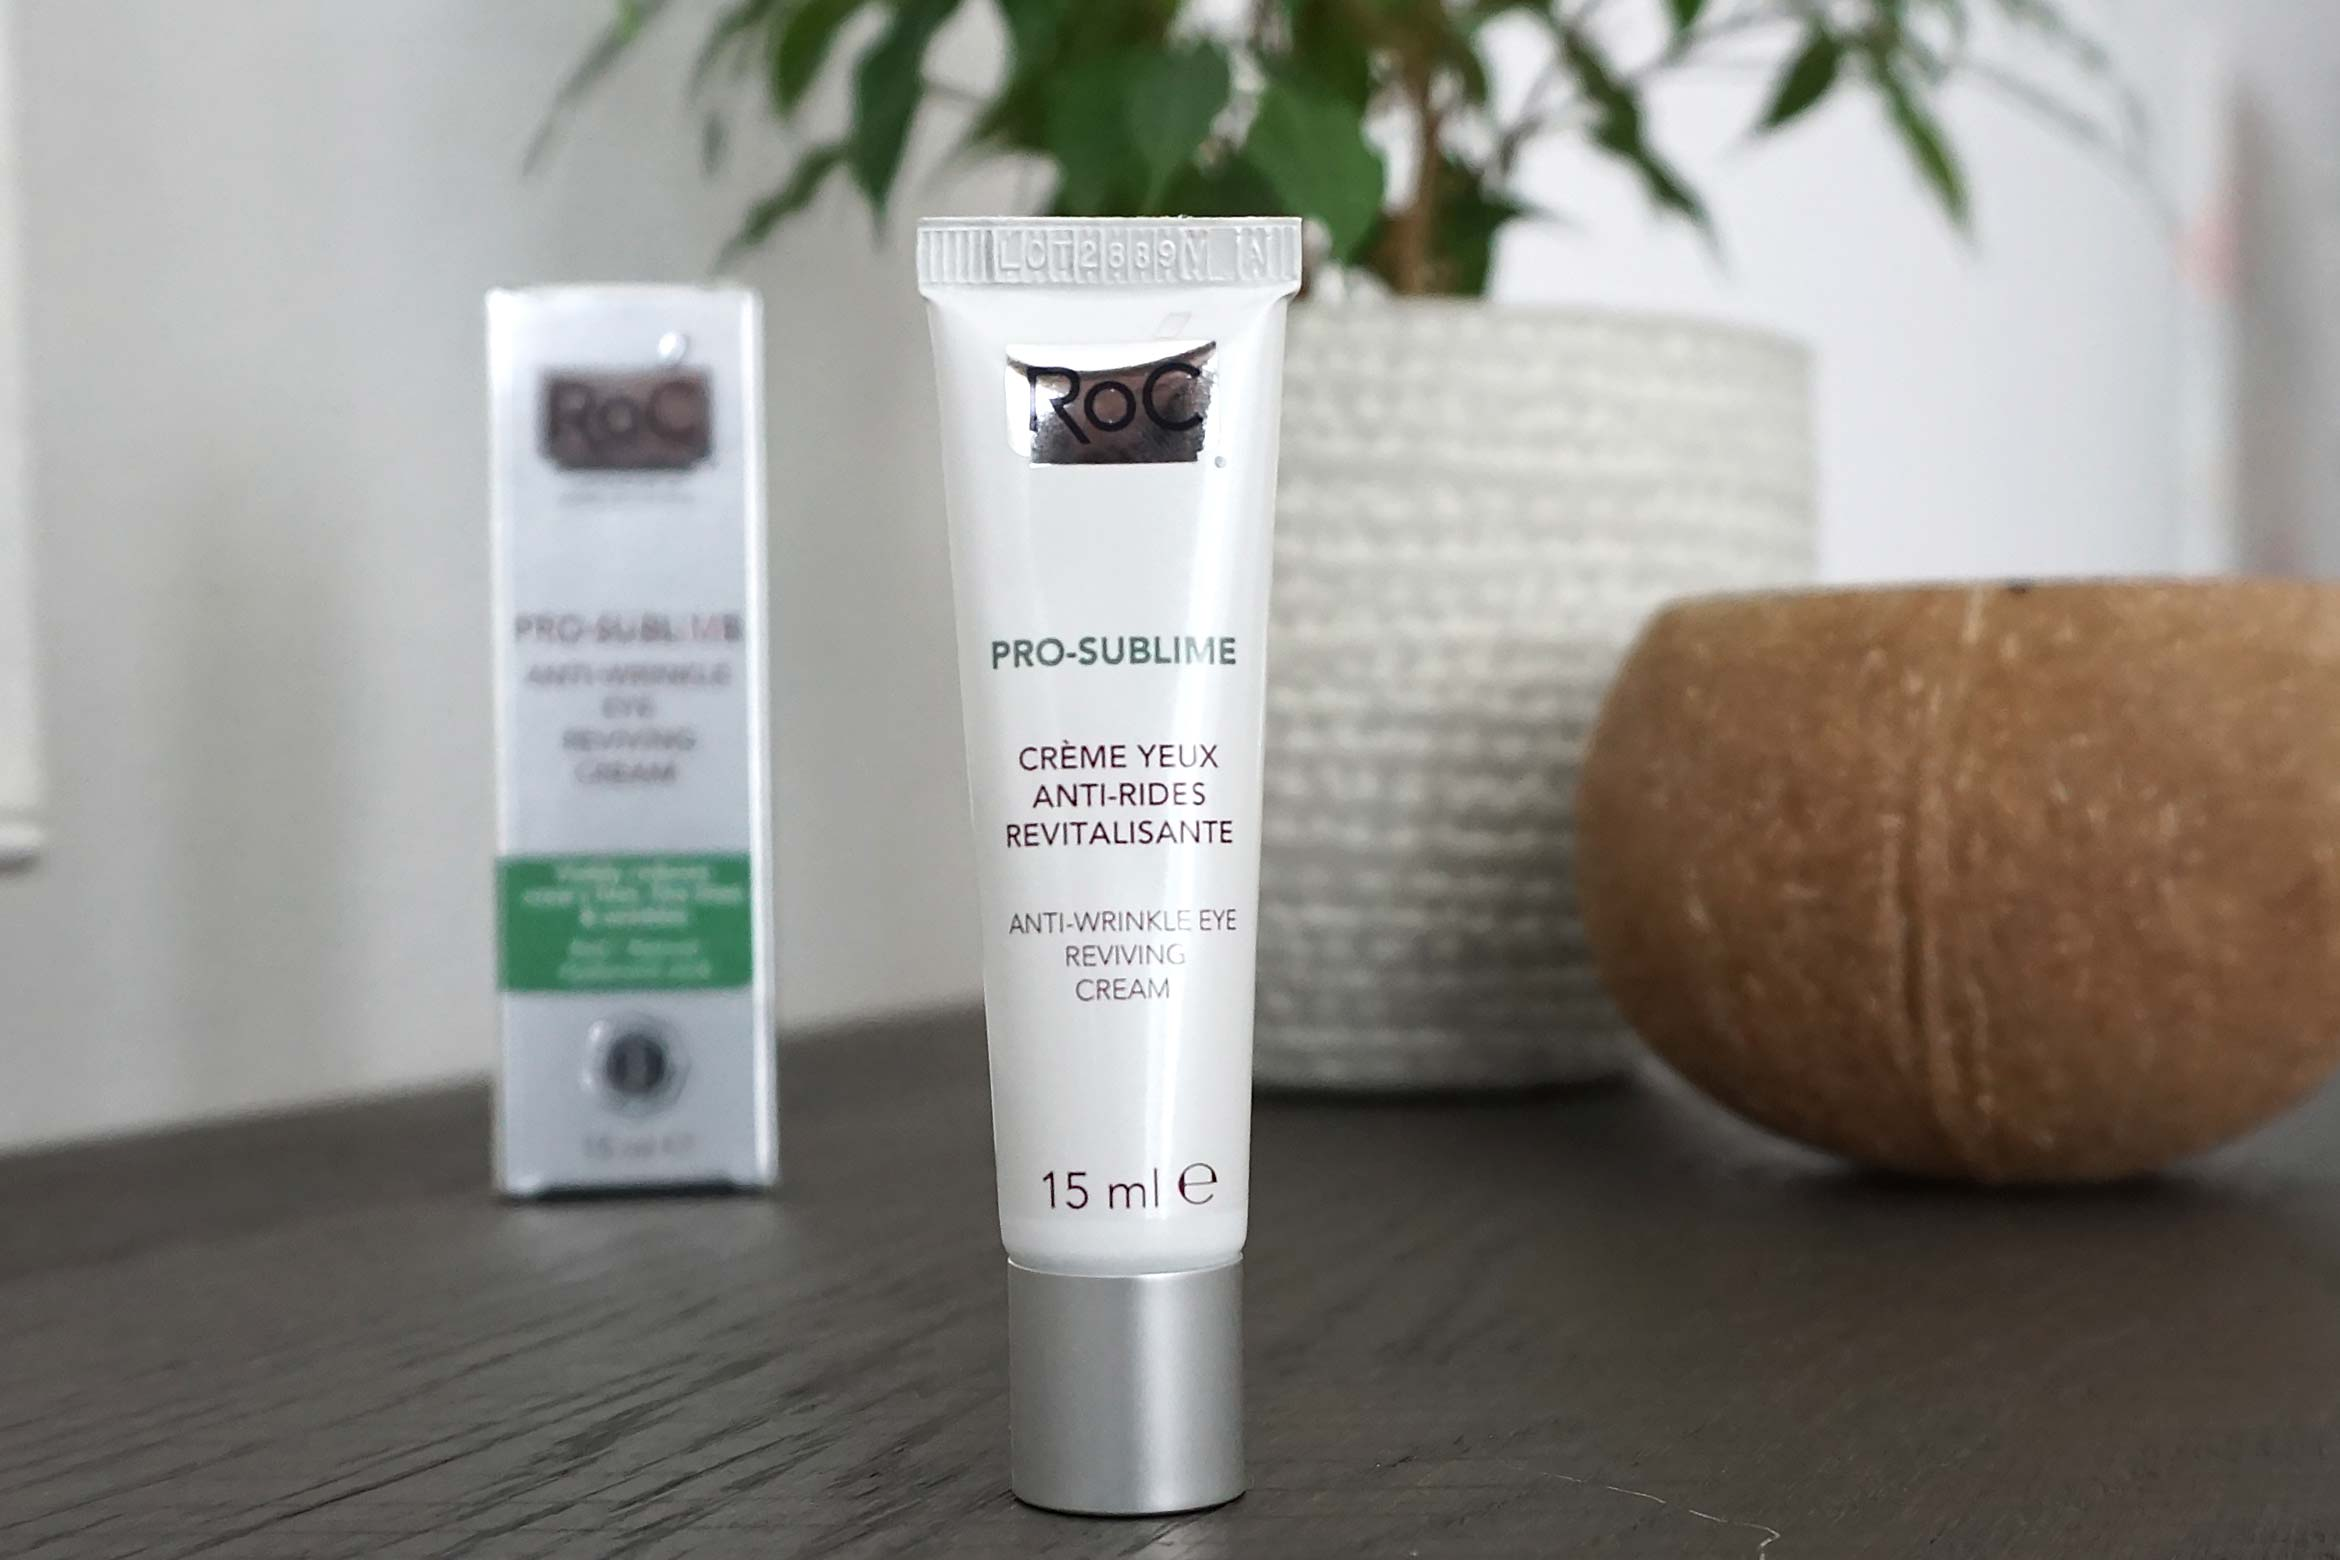 roc pro-sublime anti-wrinkle eye reviving cream review-2